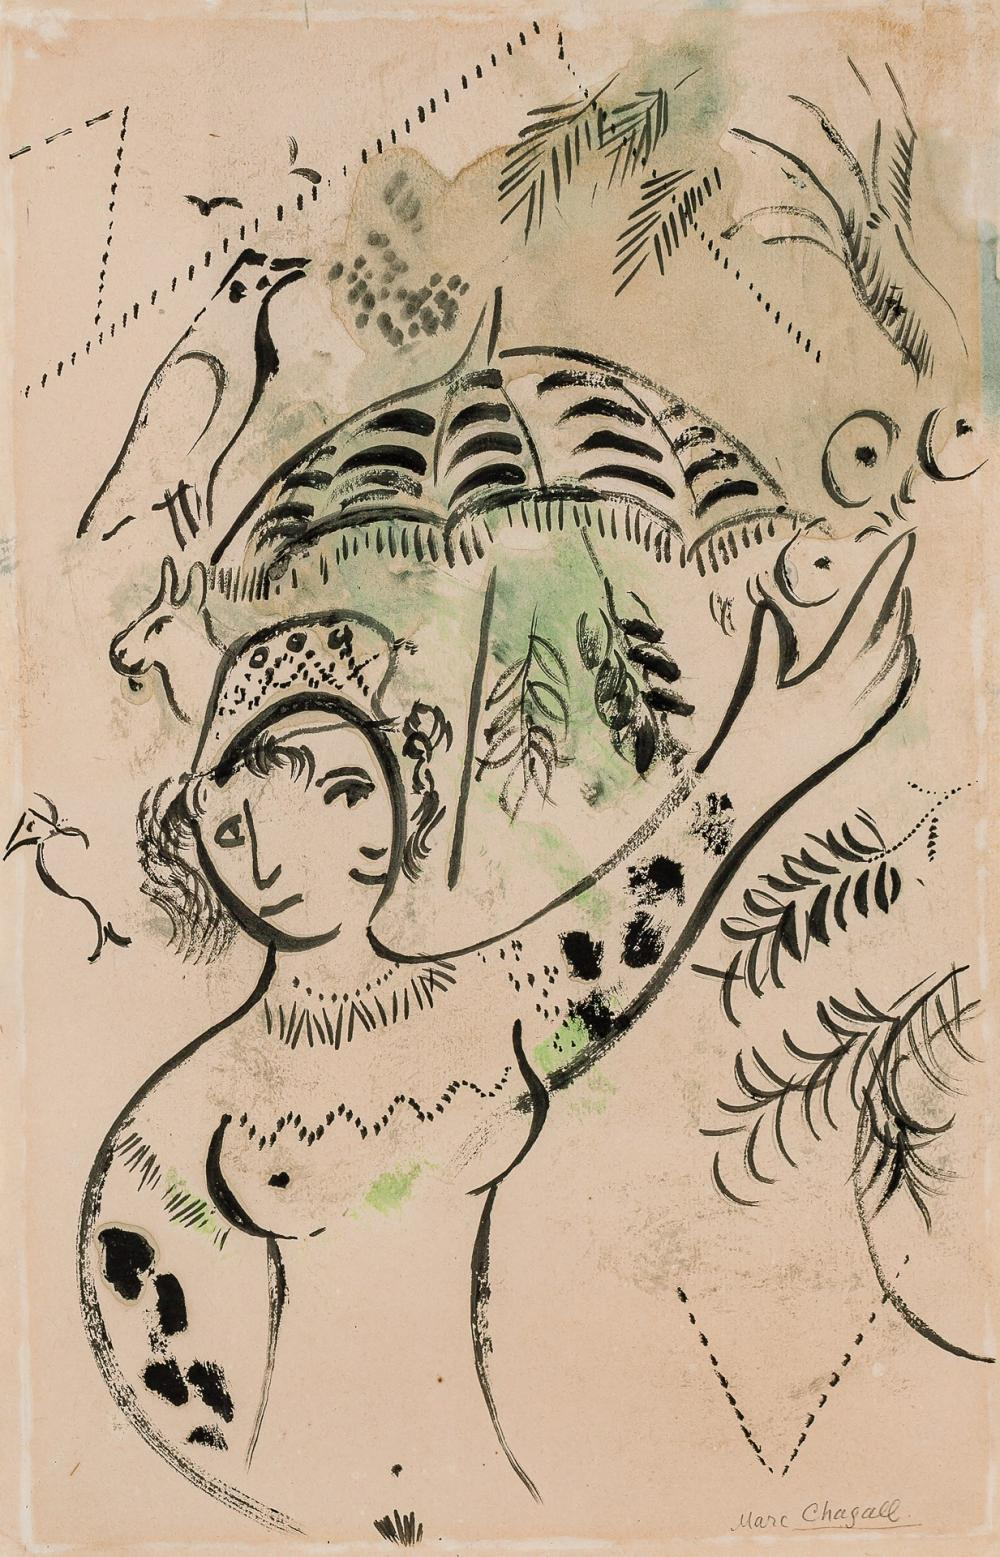 """MARC CHAGALL, Russian/French (1887-1985), """"L'Ombrelle"""" (The Parasol), 1939, India ink and gouache on paper, 11 1/2 x 17 3/4 inches"""